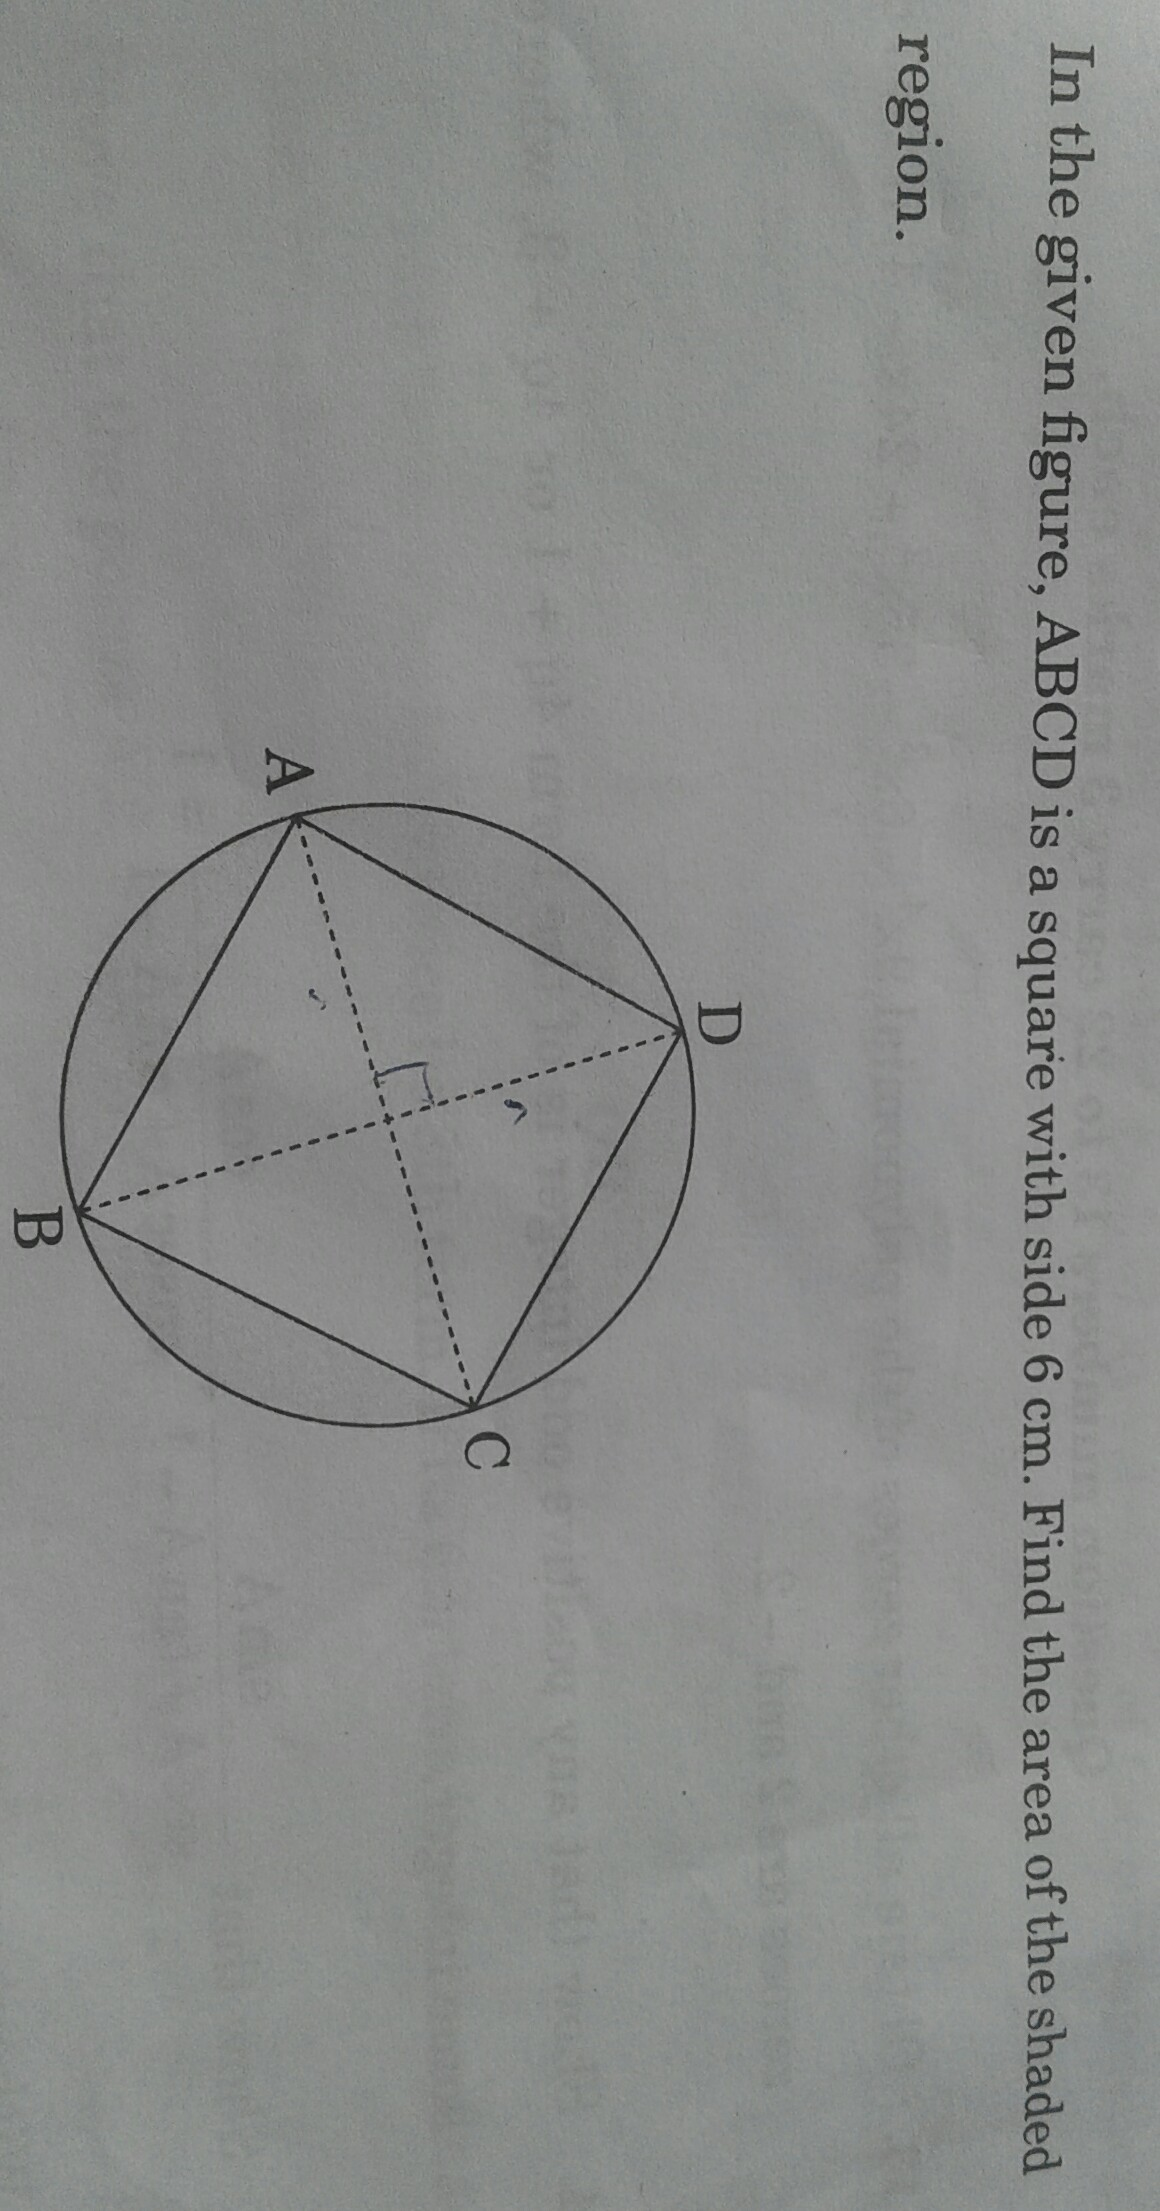 In The Given Fig Abcd Is A Square With Side 6cm Find The